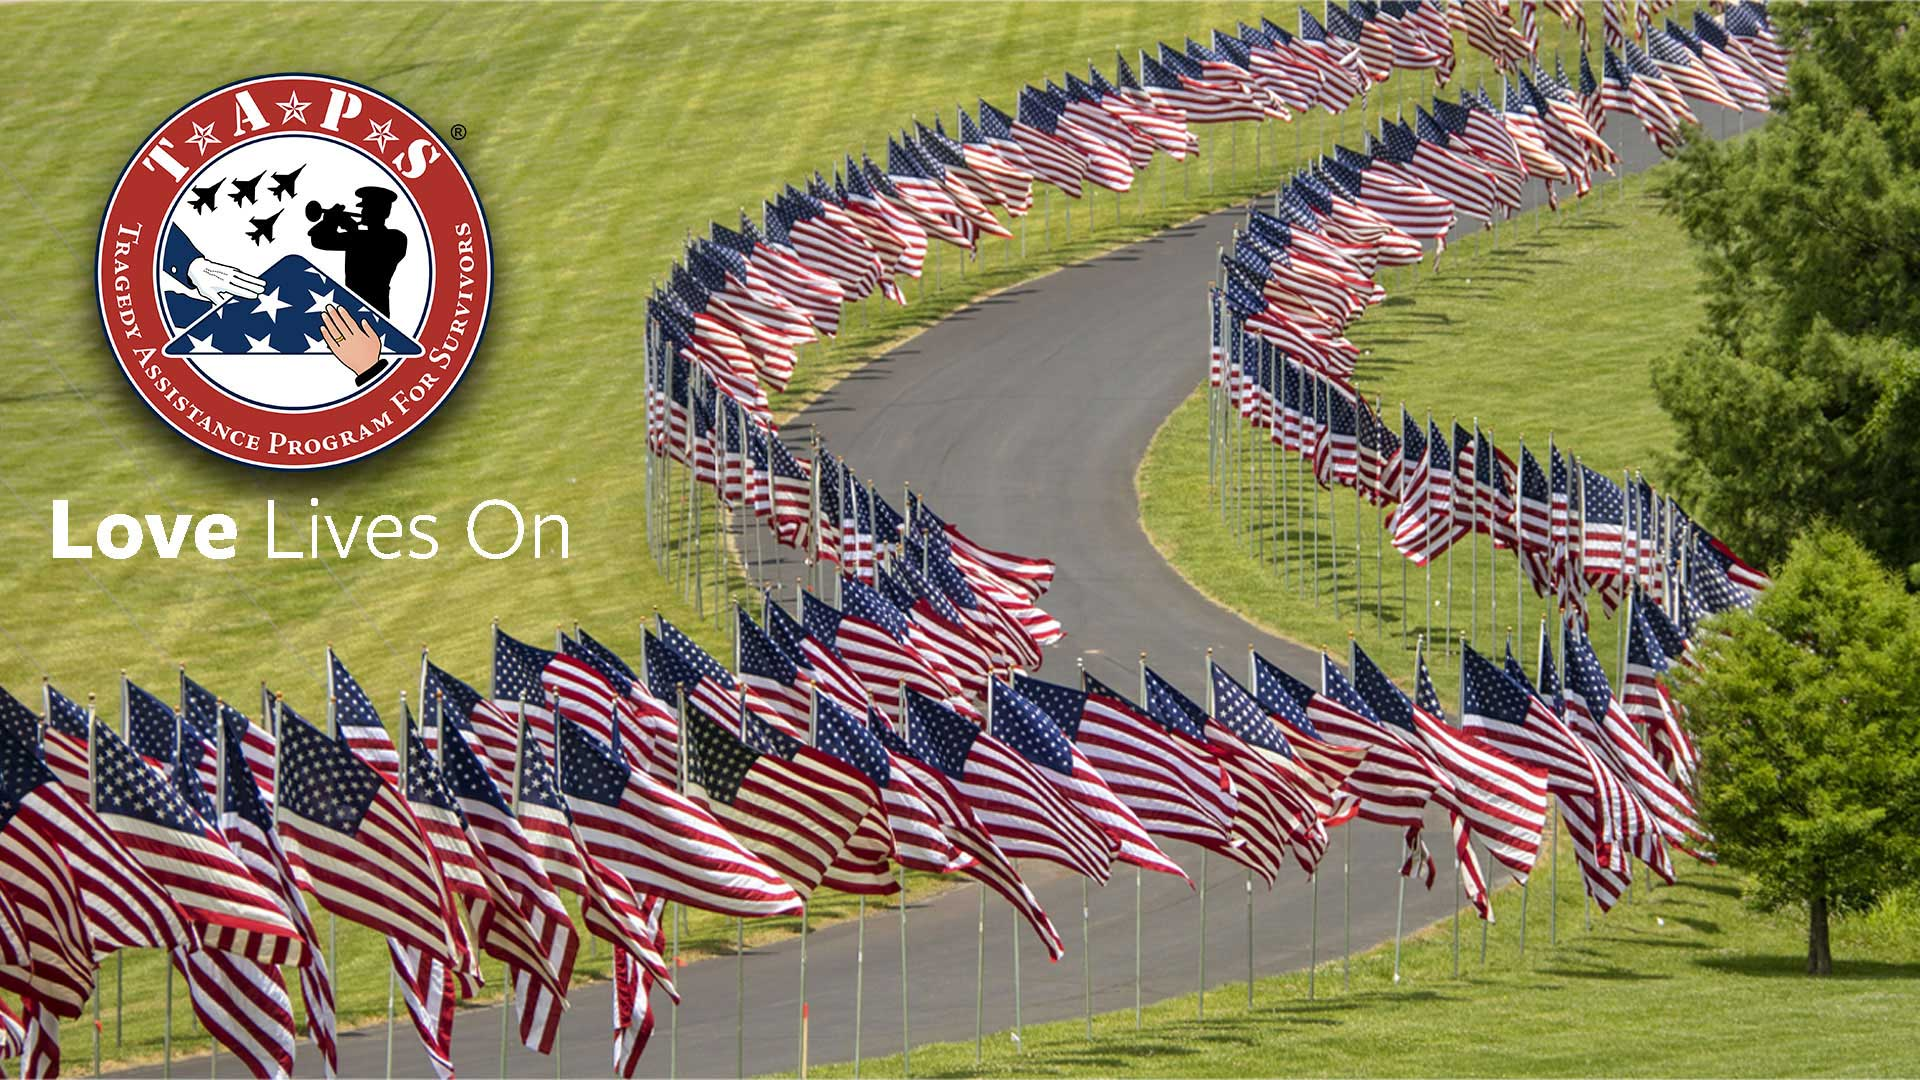 zoom background option 4 - american flags along curving road